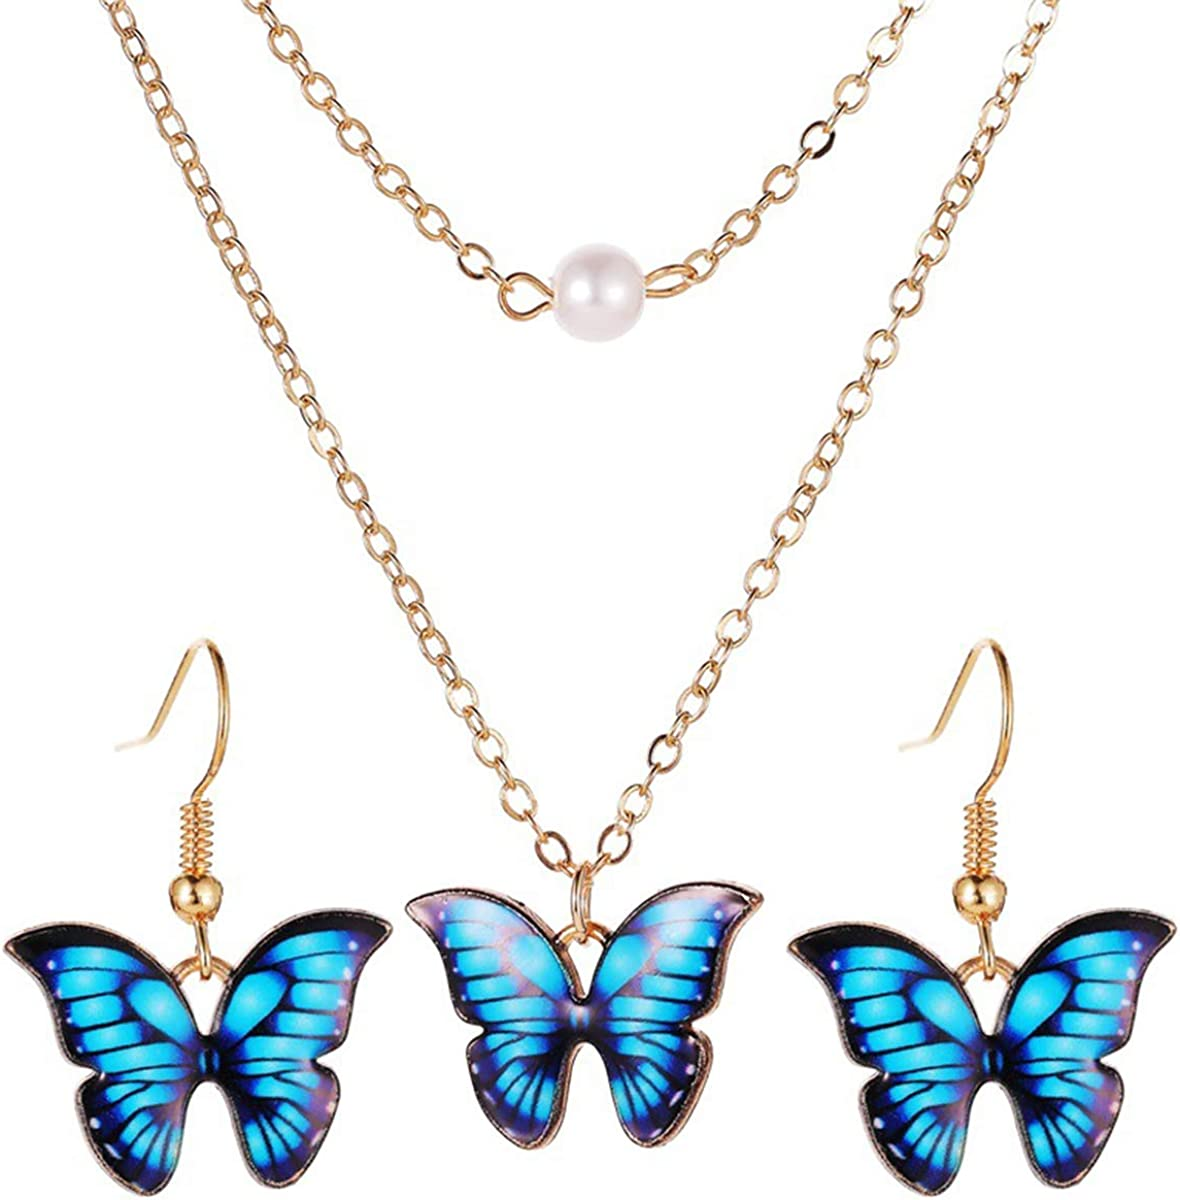 Butterfly Pendant Necklace Earrings Rare Fashion Set Necklaces Choker Challenge the lowest price of Japan